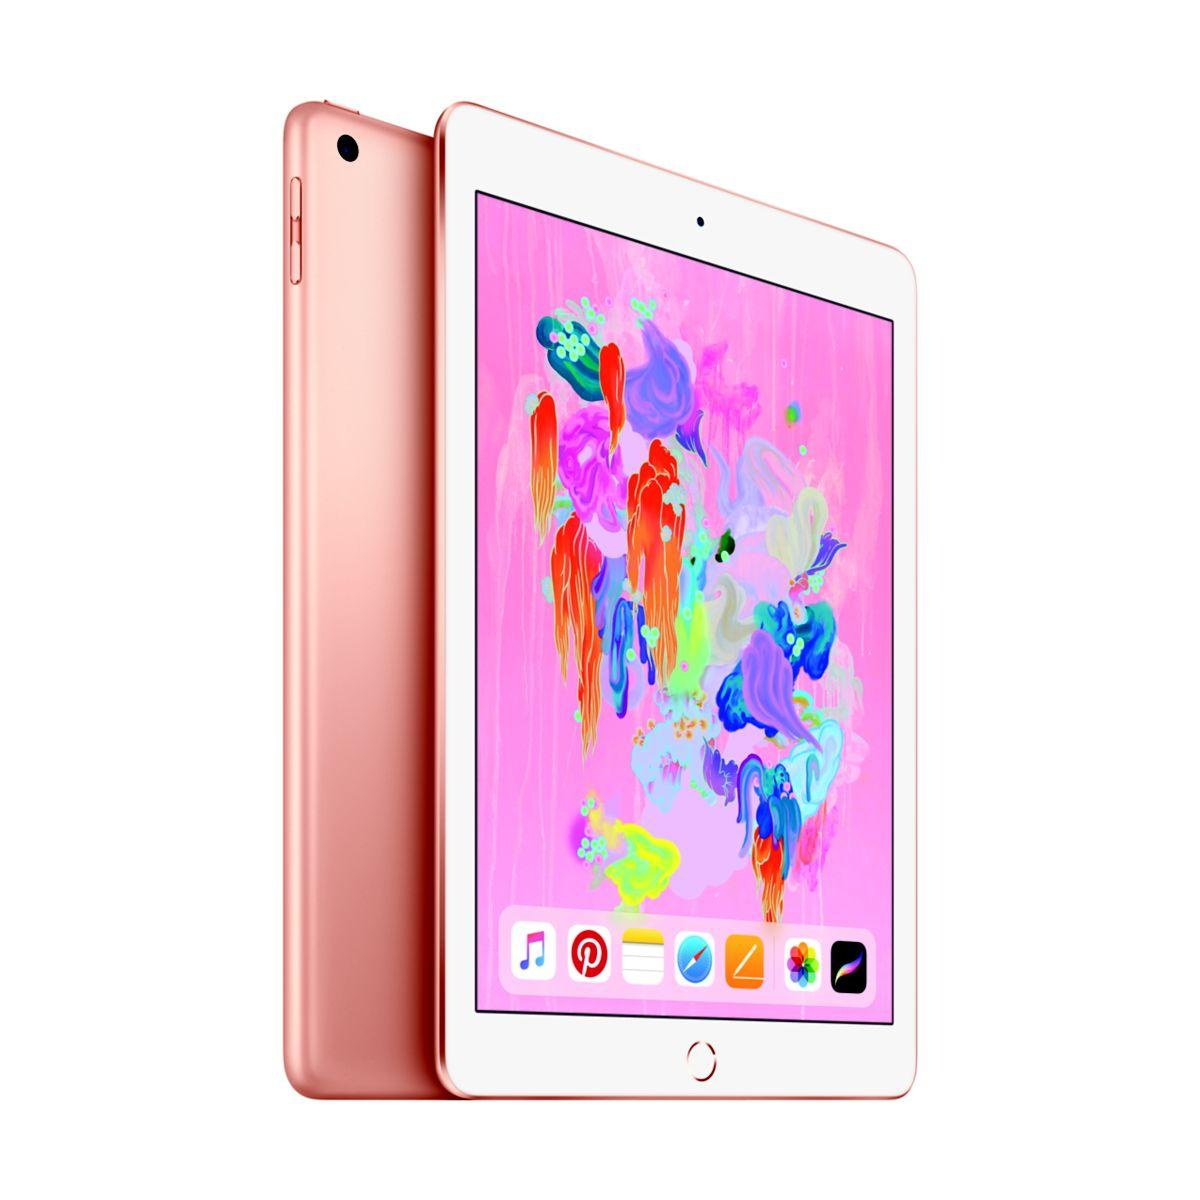 Tablette apple ipad new 128go cell or (photo)